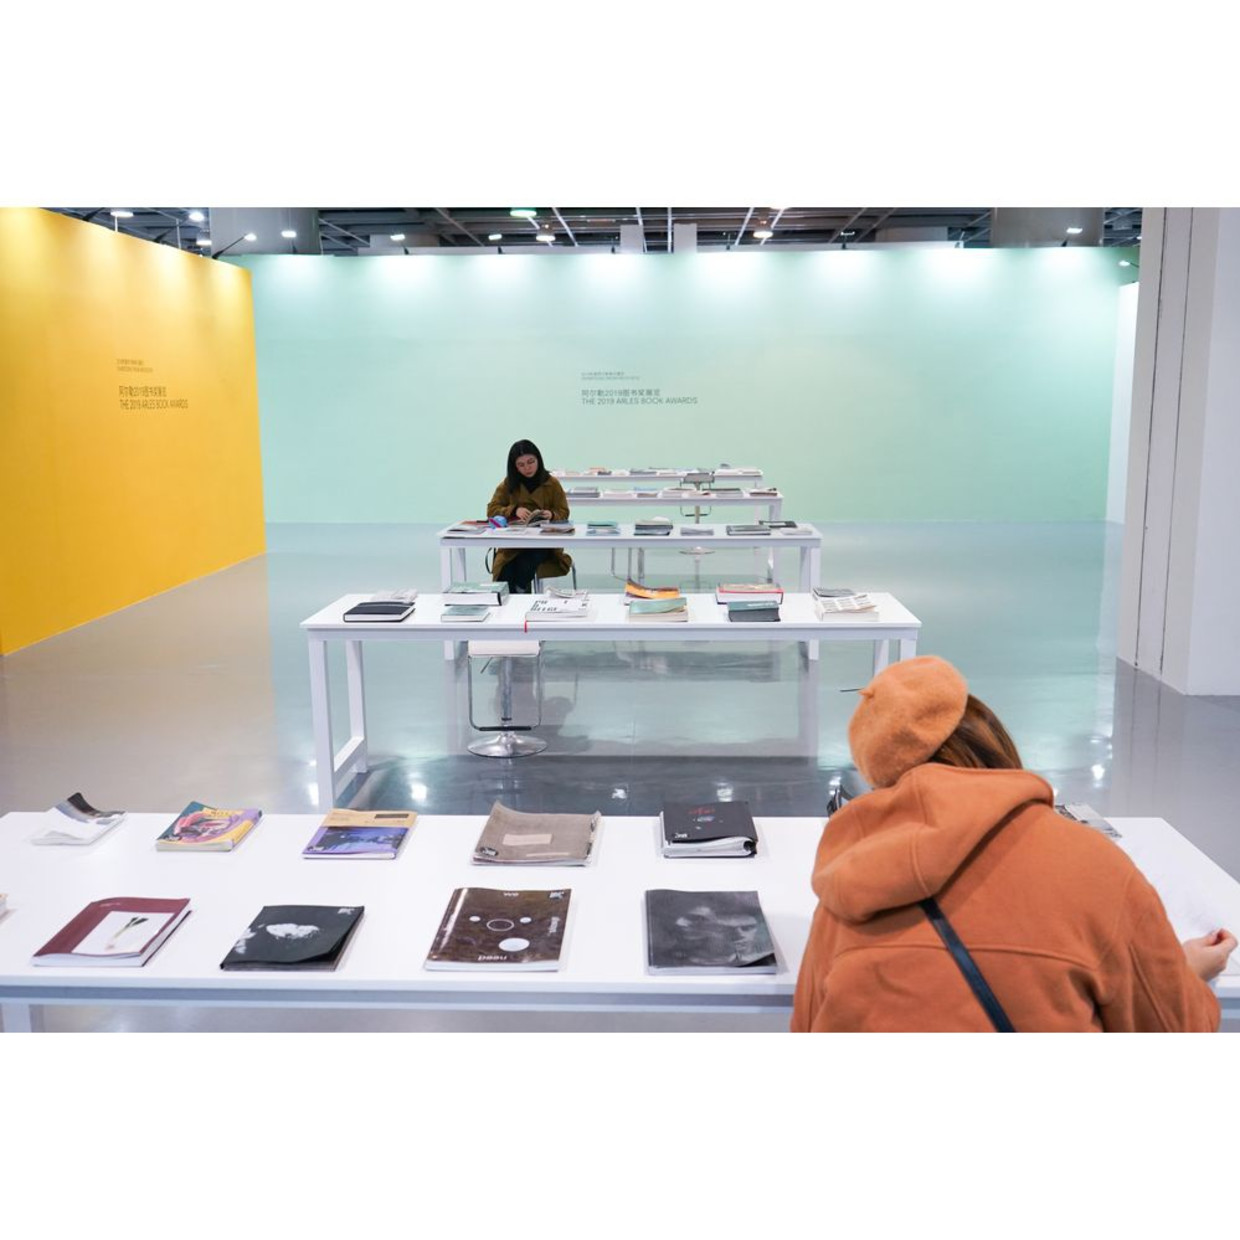 THE 2020 BOOK AWARDS The Rencontres d'Arles Book awards were created in order to support the swift growth in the...